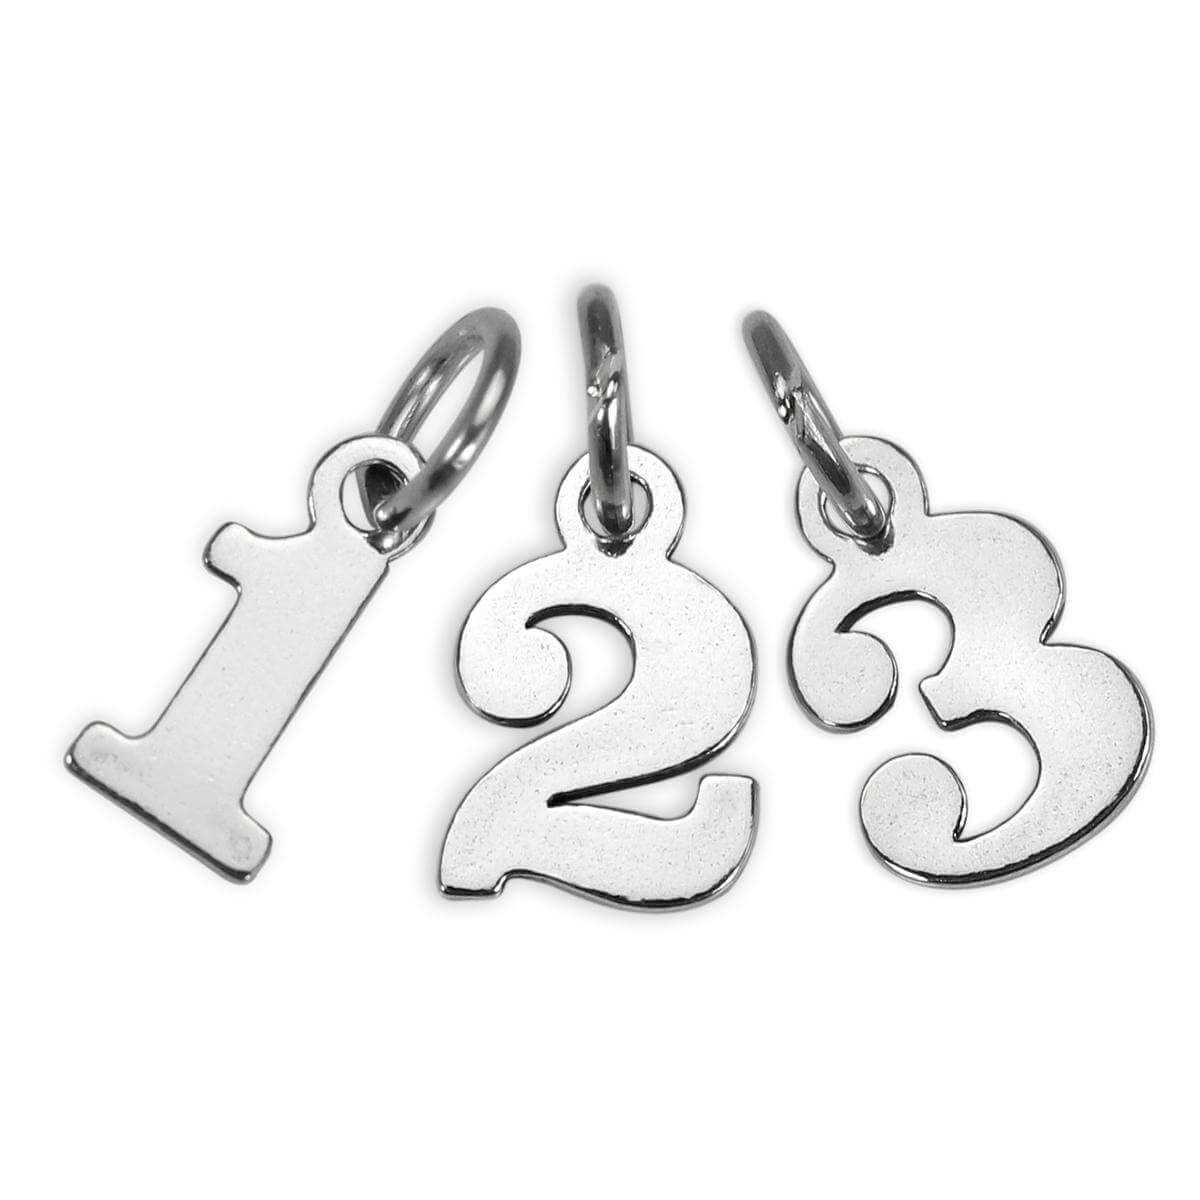 Small Sterling Silver Number Charm 0 - 9